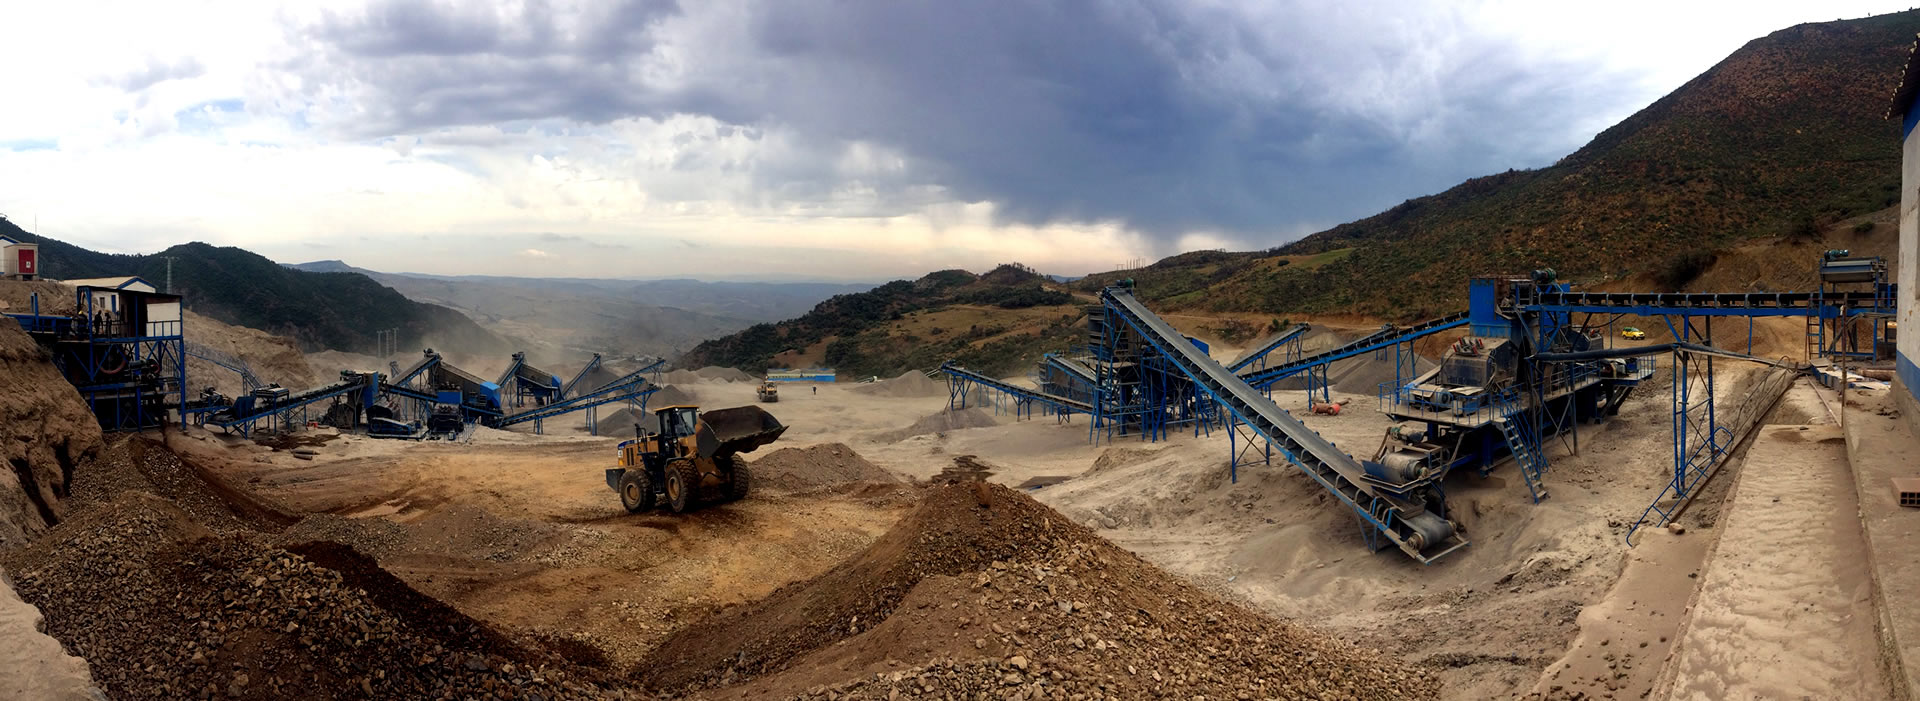 Mining quarry and equipment in the daytime | A&R Engineering